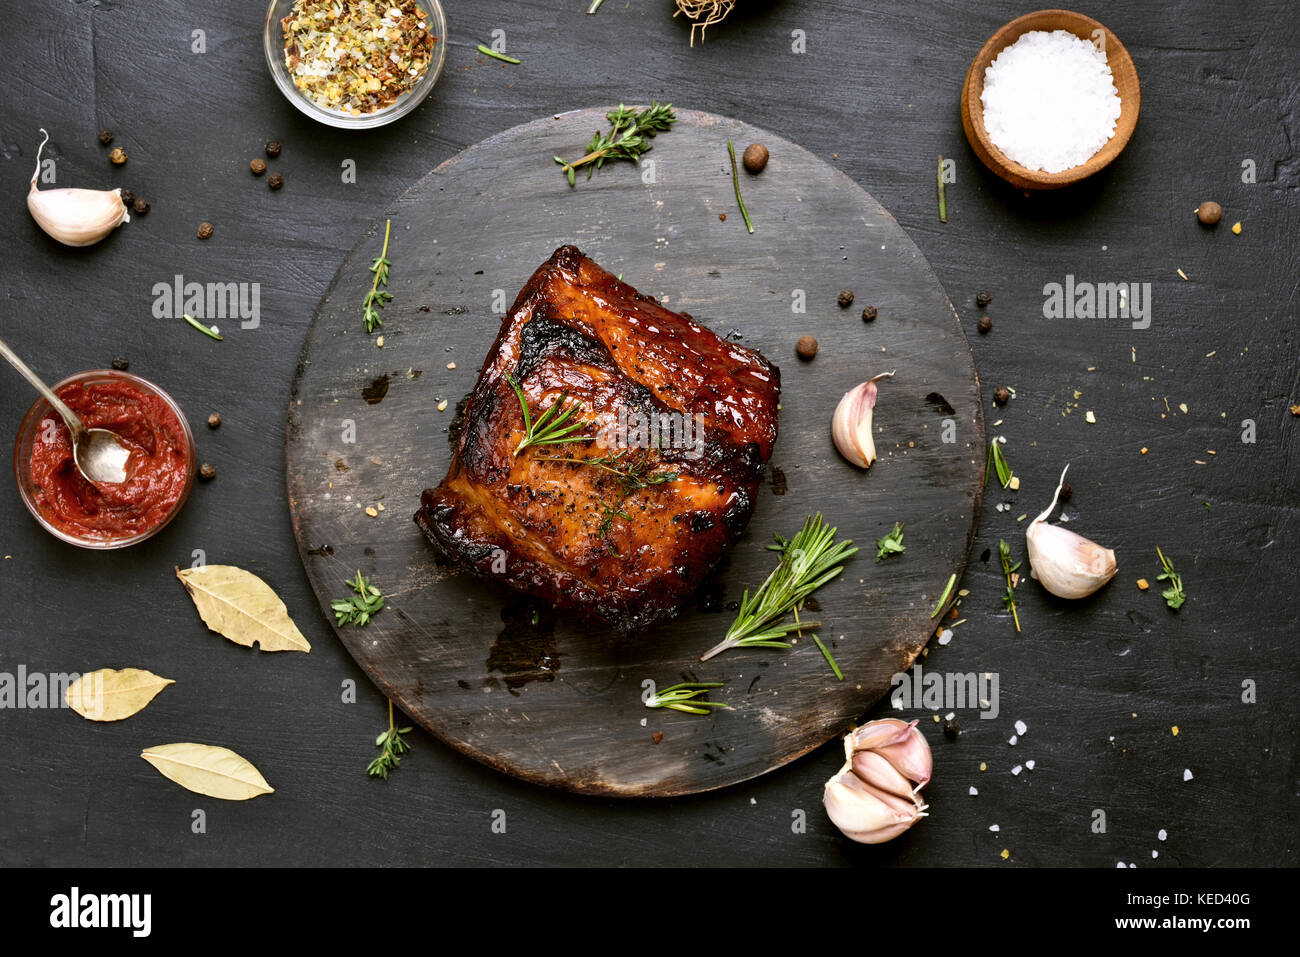 Barbecue pork, grilled meat on dark background. Top view - Stock Image